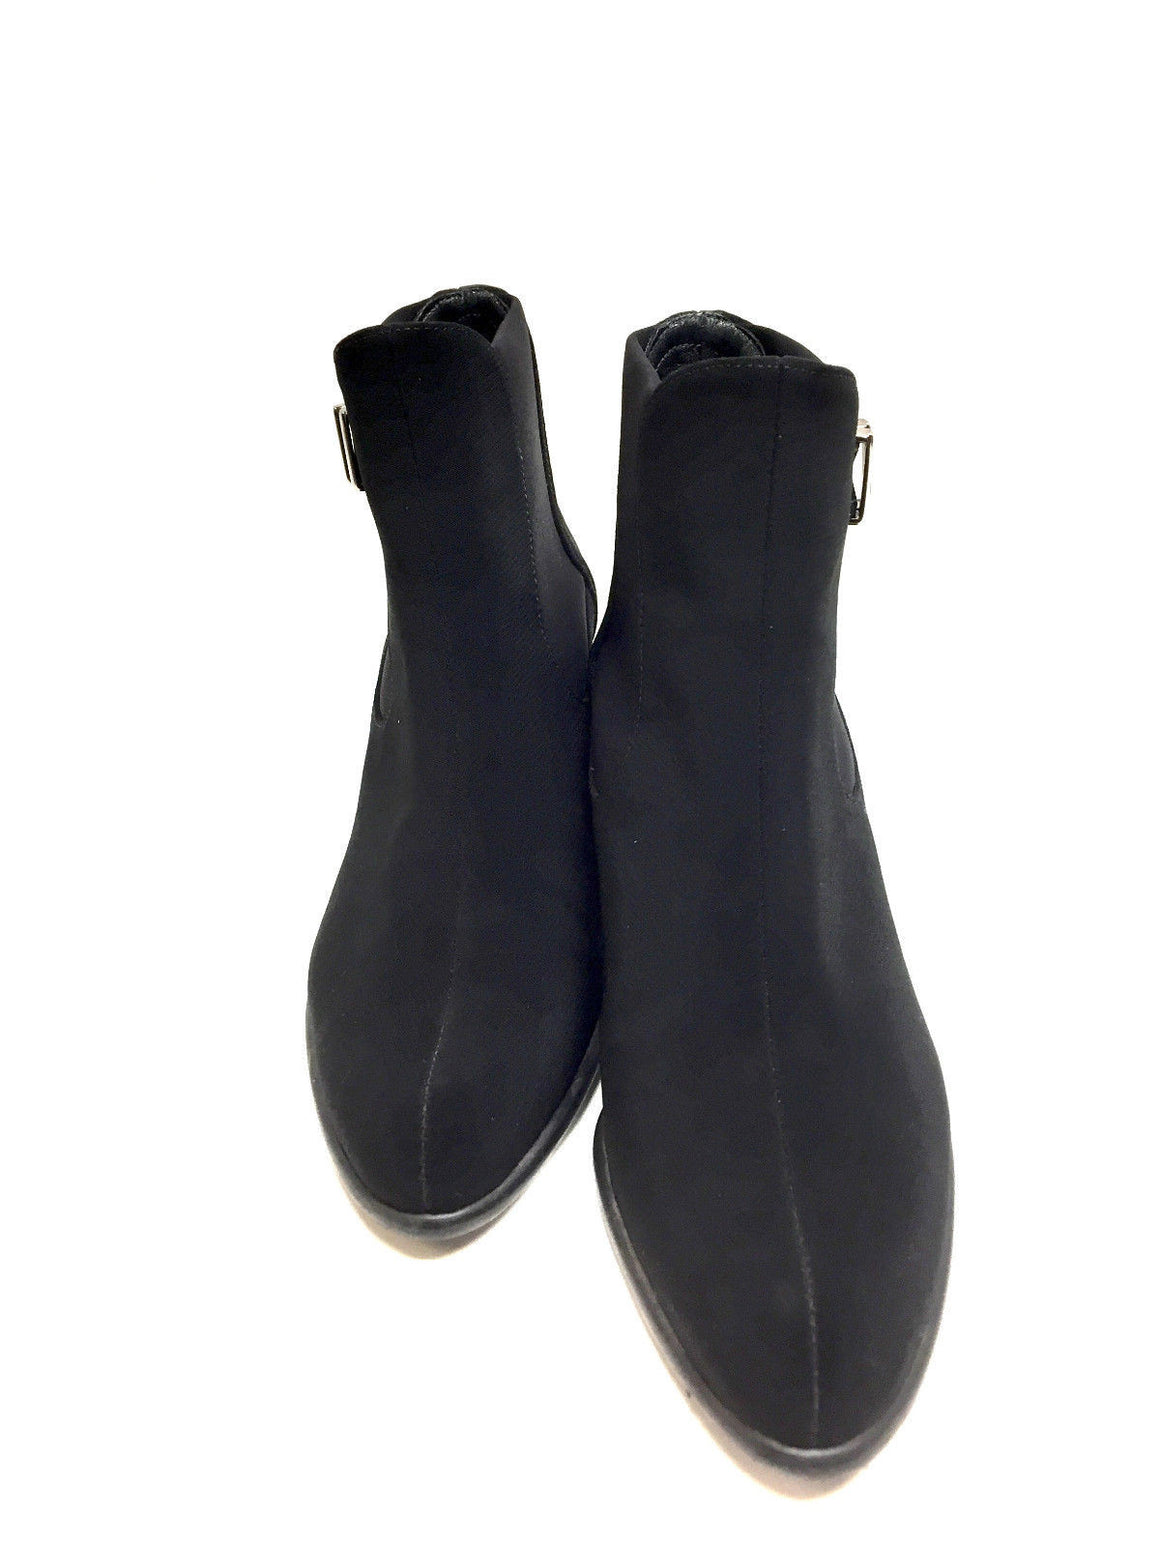 bisbiz.com STUART WEITZMAN Black Gore-Tex Microfiber Patent Leather Heels Ankle Boots/Booties Size: 7.5 - Bis Luxury Resale